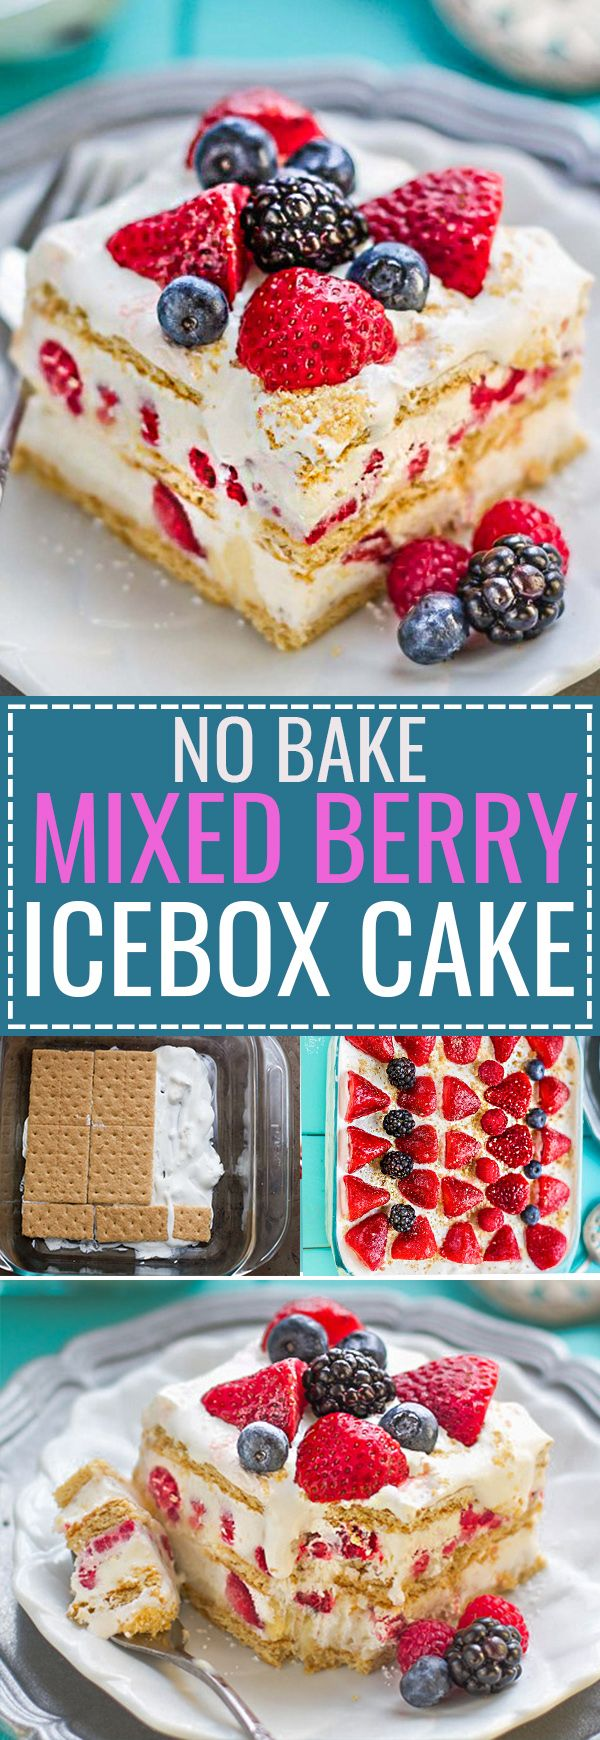 No Bake Mixed Summer Berry Icebox Cake is the perfect easy dessert for potlucks, barbecues, cookouts, picnics, baby showers, or any Fourth of July or Memorial Day party with the red, white and blue theme. Best of all, instead of triple, it's got four berries - strawberries, blackberries, blueberries and raspberries with 10 minutes of prep time containing fresh whipped cream, cream cheese & graham crackers.